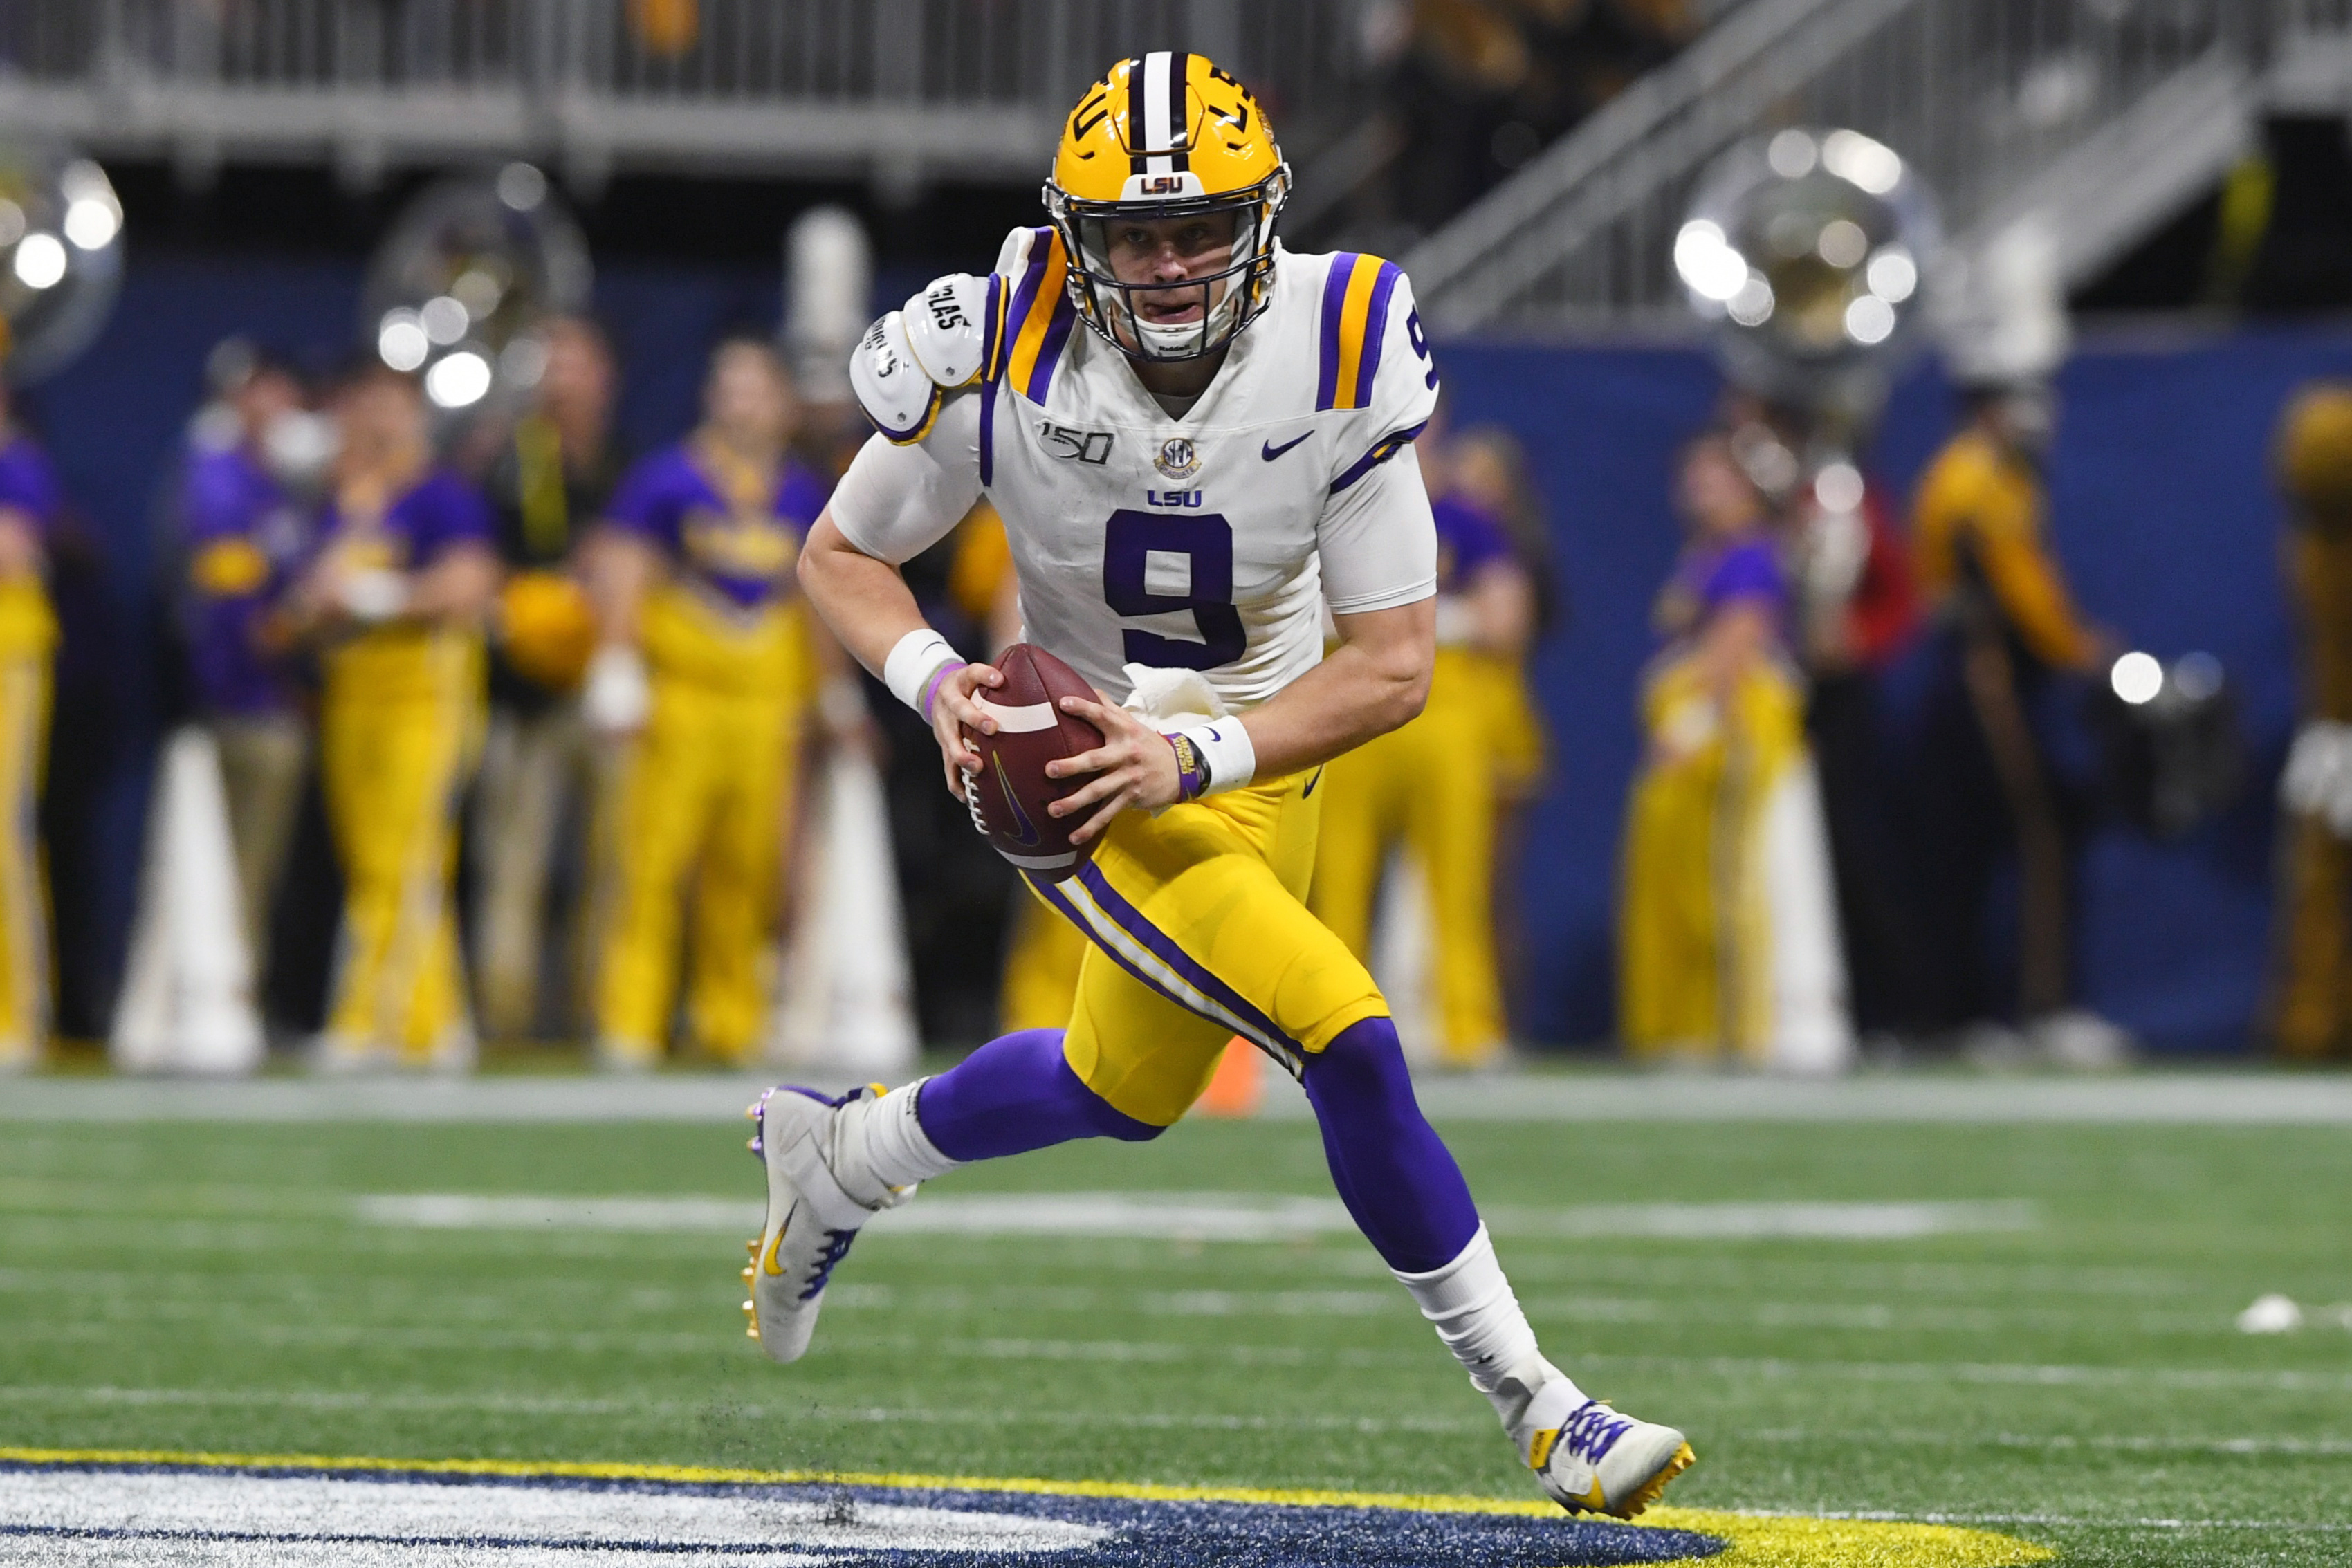 NFL Draft: 5 things to know about No. 1 pick Joe Burrow